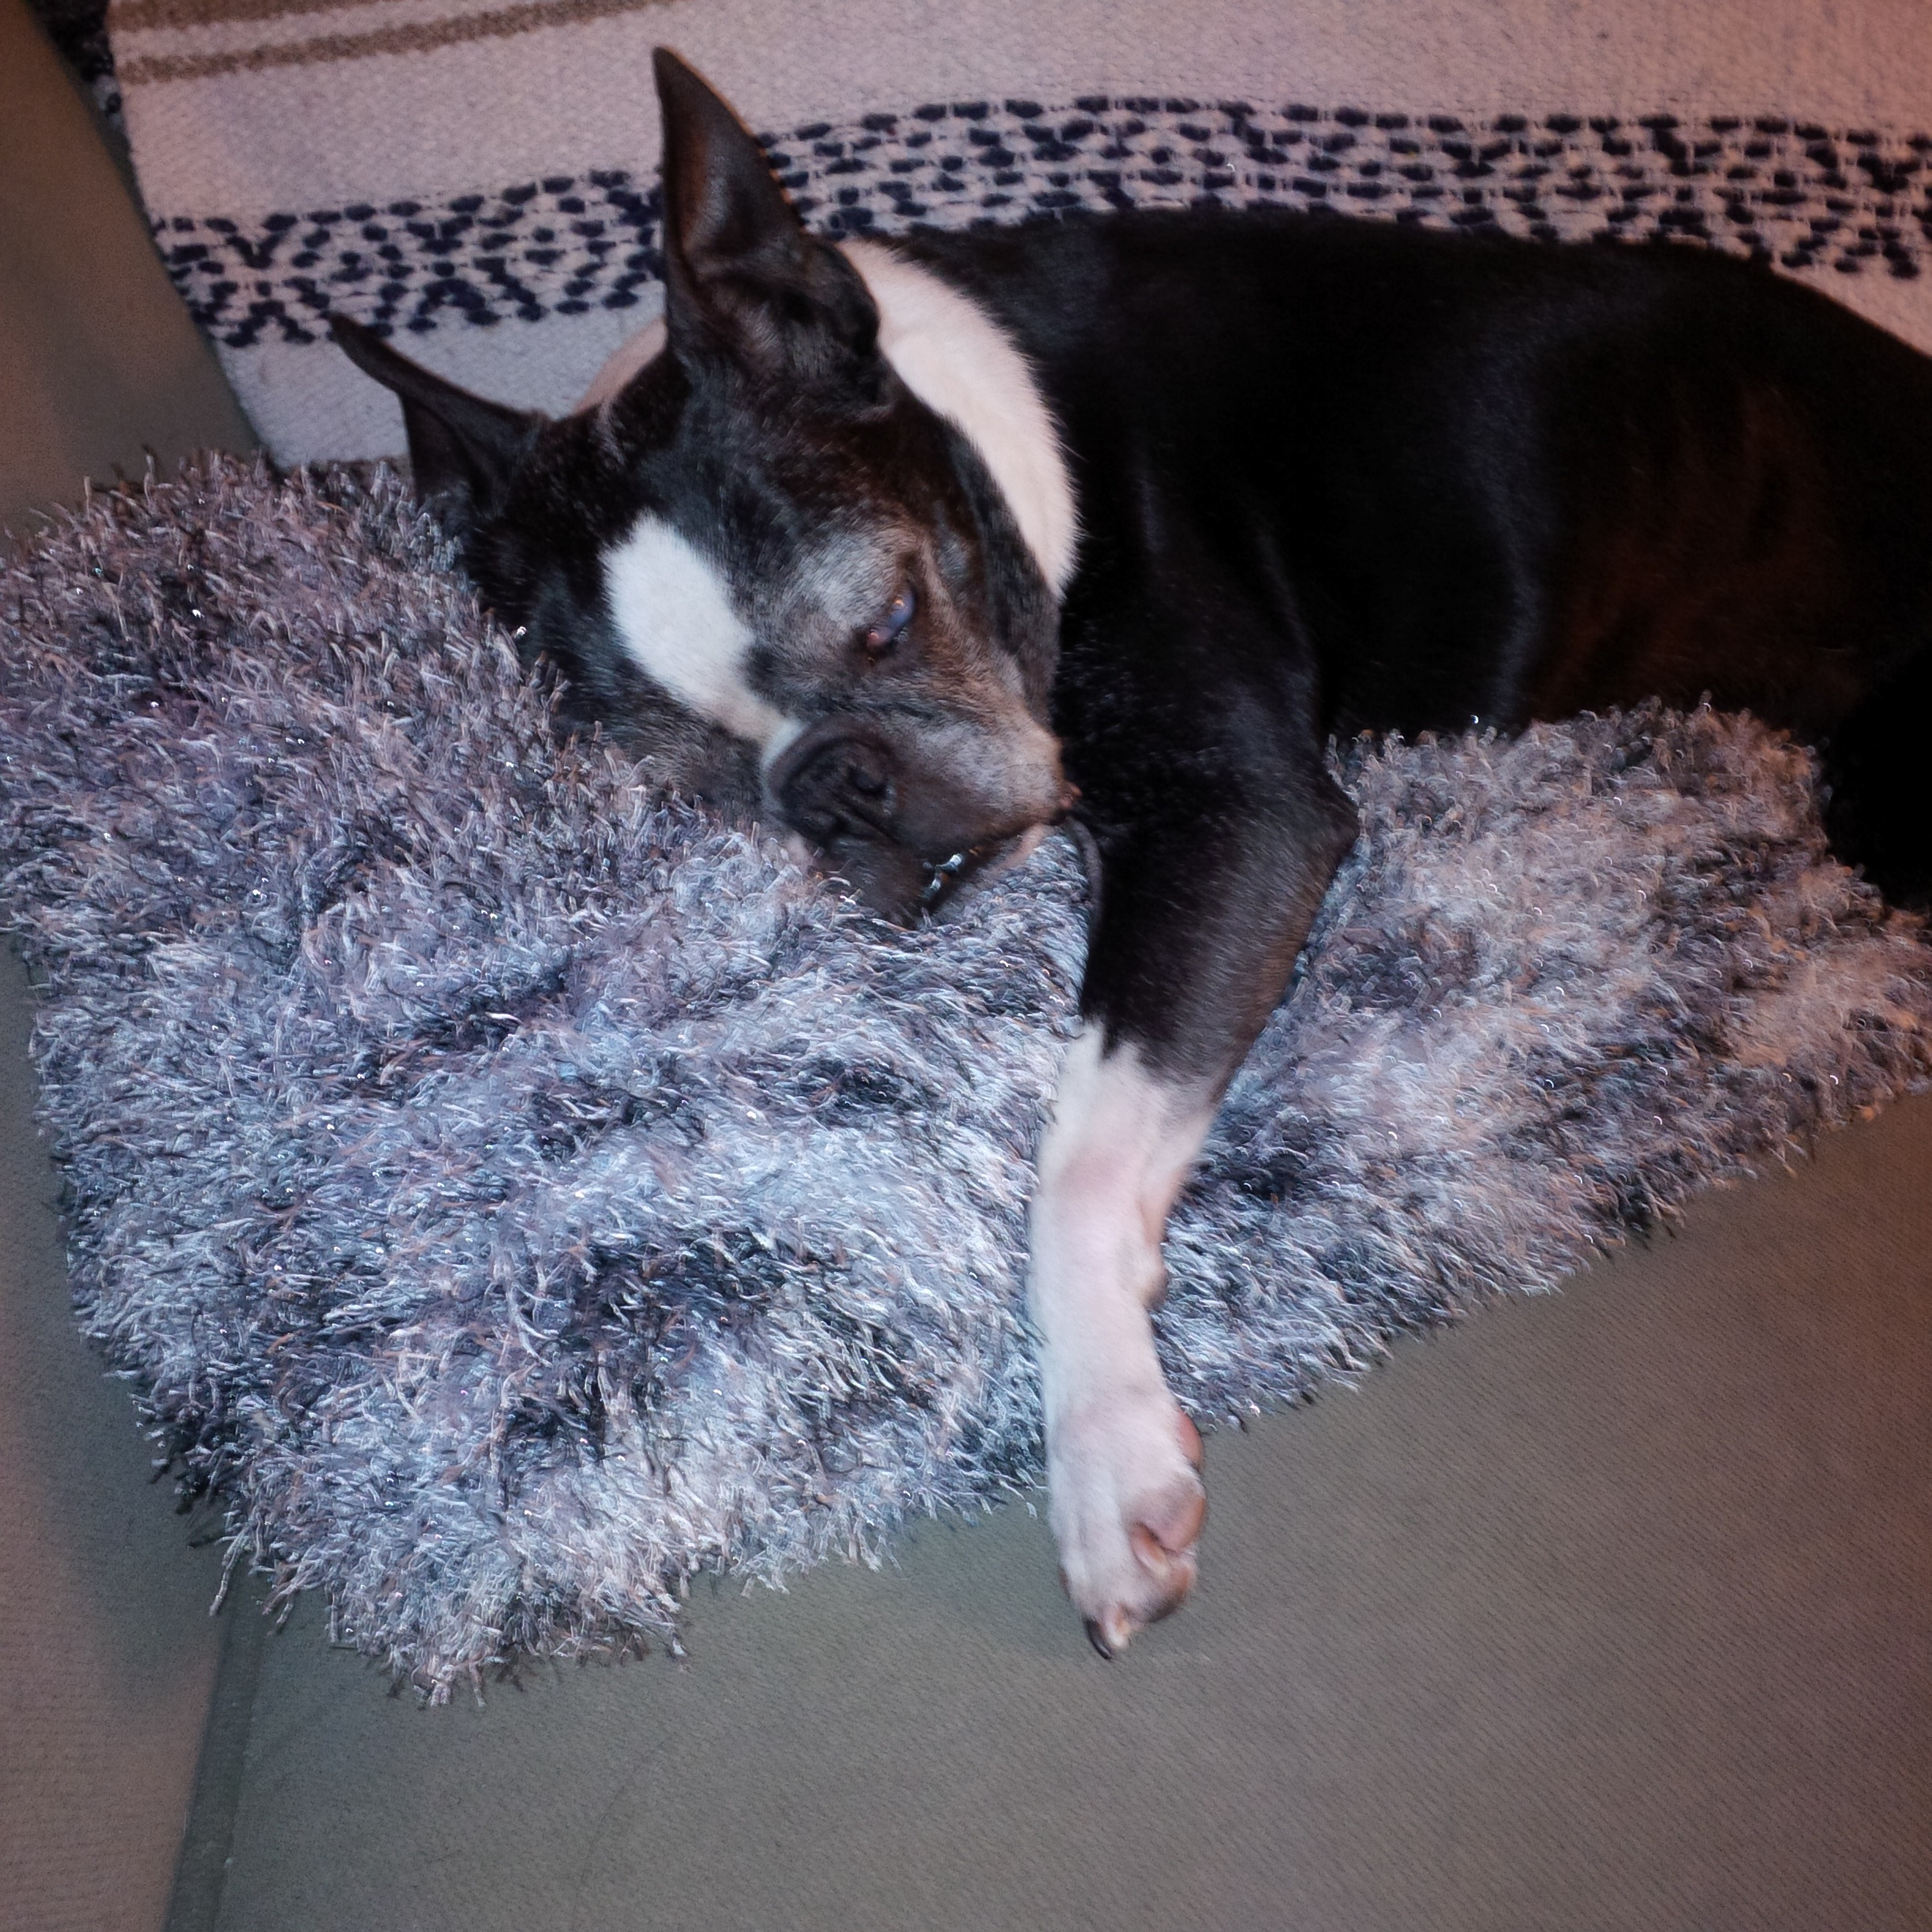 For a blind and deaf senior, he has no problem finding the coziest spot in any house!